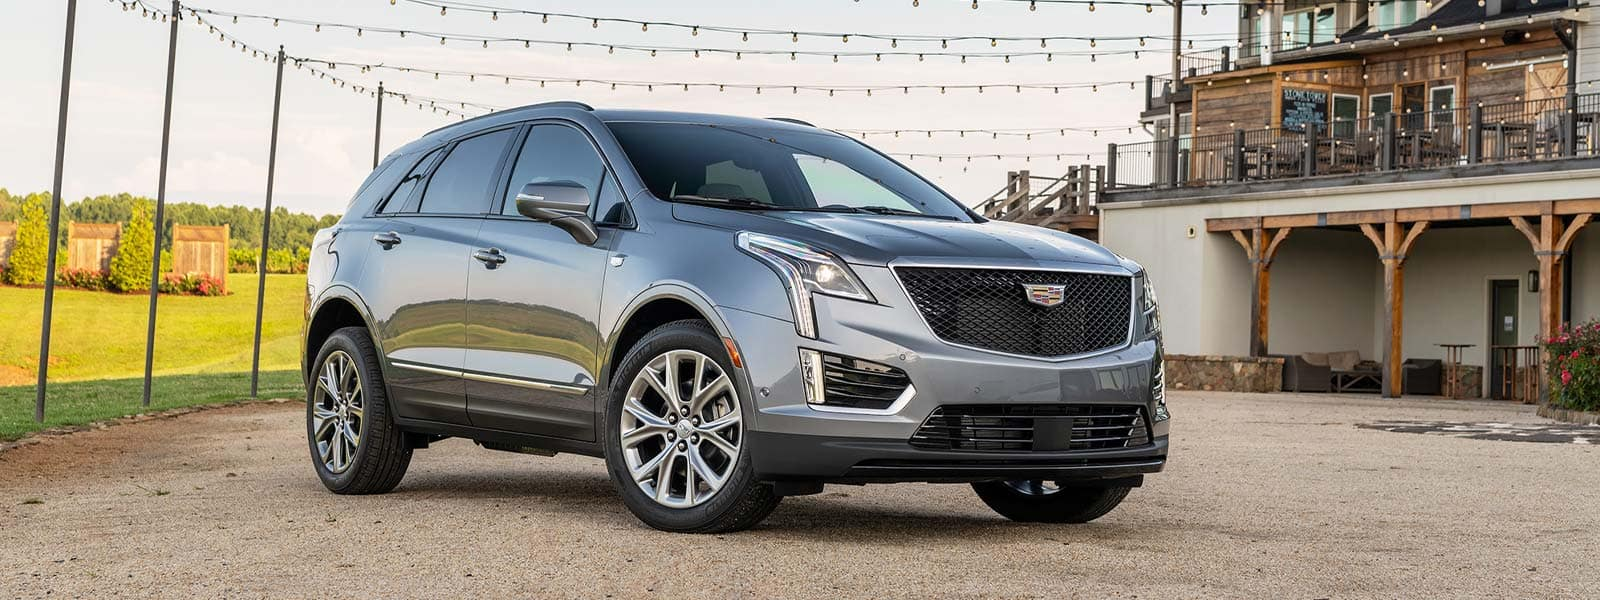 Buy or lease new 2021 Cadillac XT5 in Thornhill Ontario